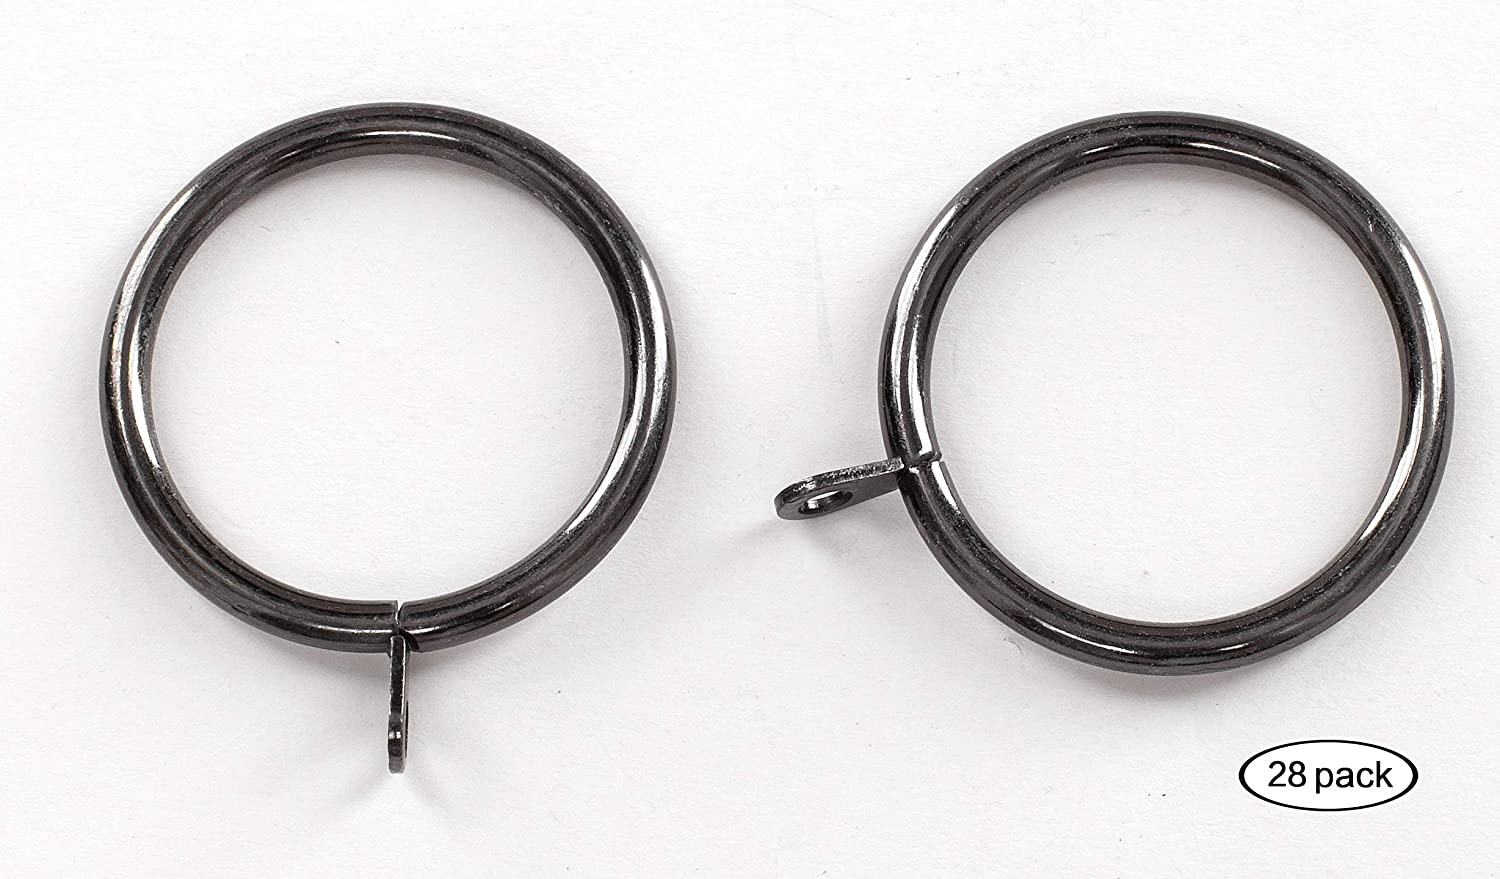 Drapery Rings Inner Diameter Pewter 1 1//4 Pole Metal with Eyelets 1.5 38mm Fits Up to 1.25 Inch Black//Brown 14PC// 2 inch, Pewter Curtainsville 14 pcs Curtain Rod Ring